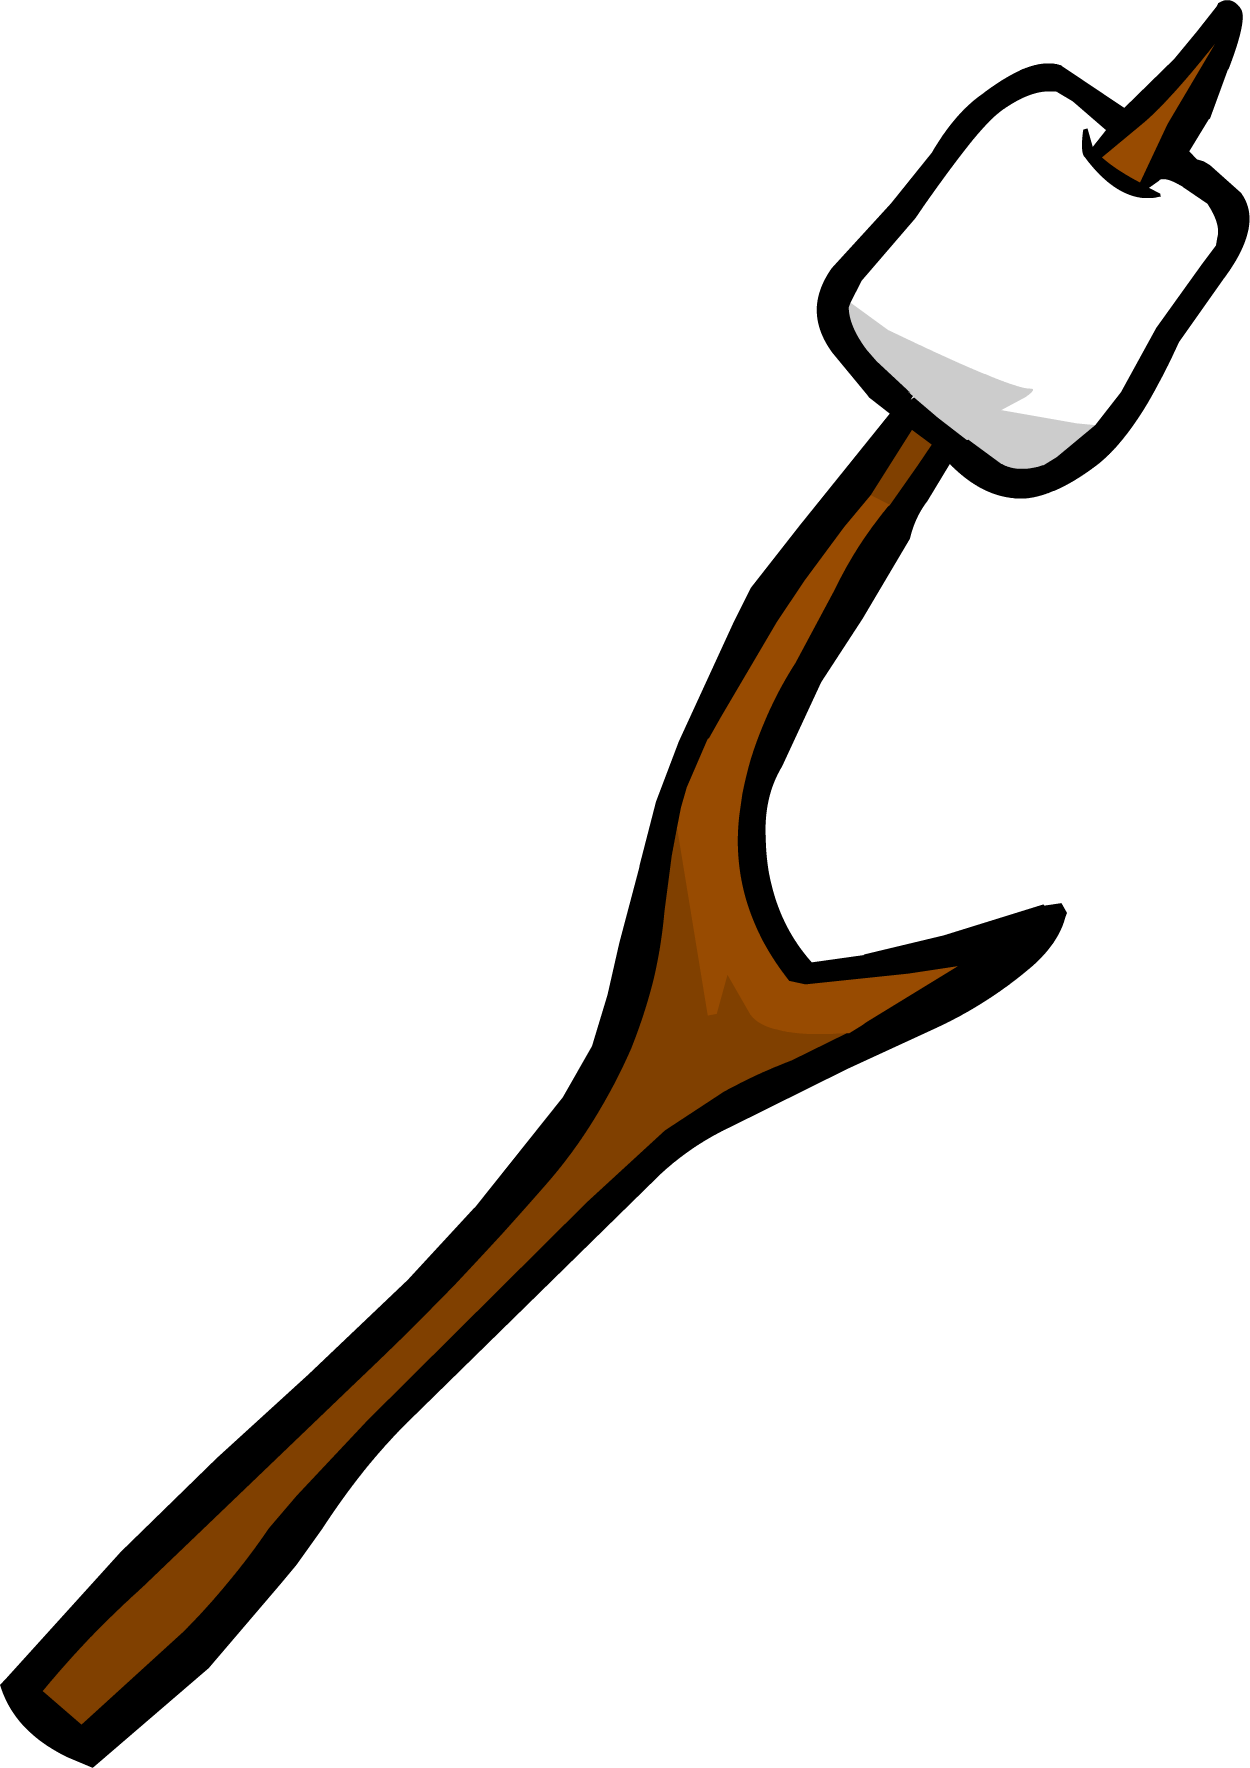 Stick clipart. Marshmallow transparent png stickpng vector library